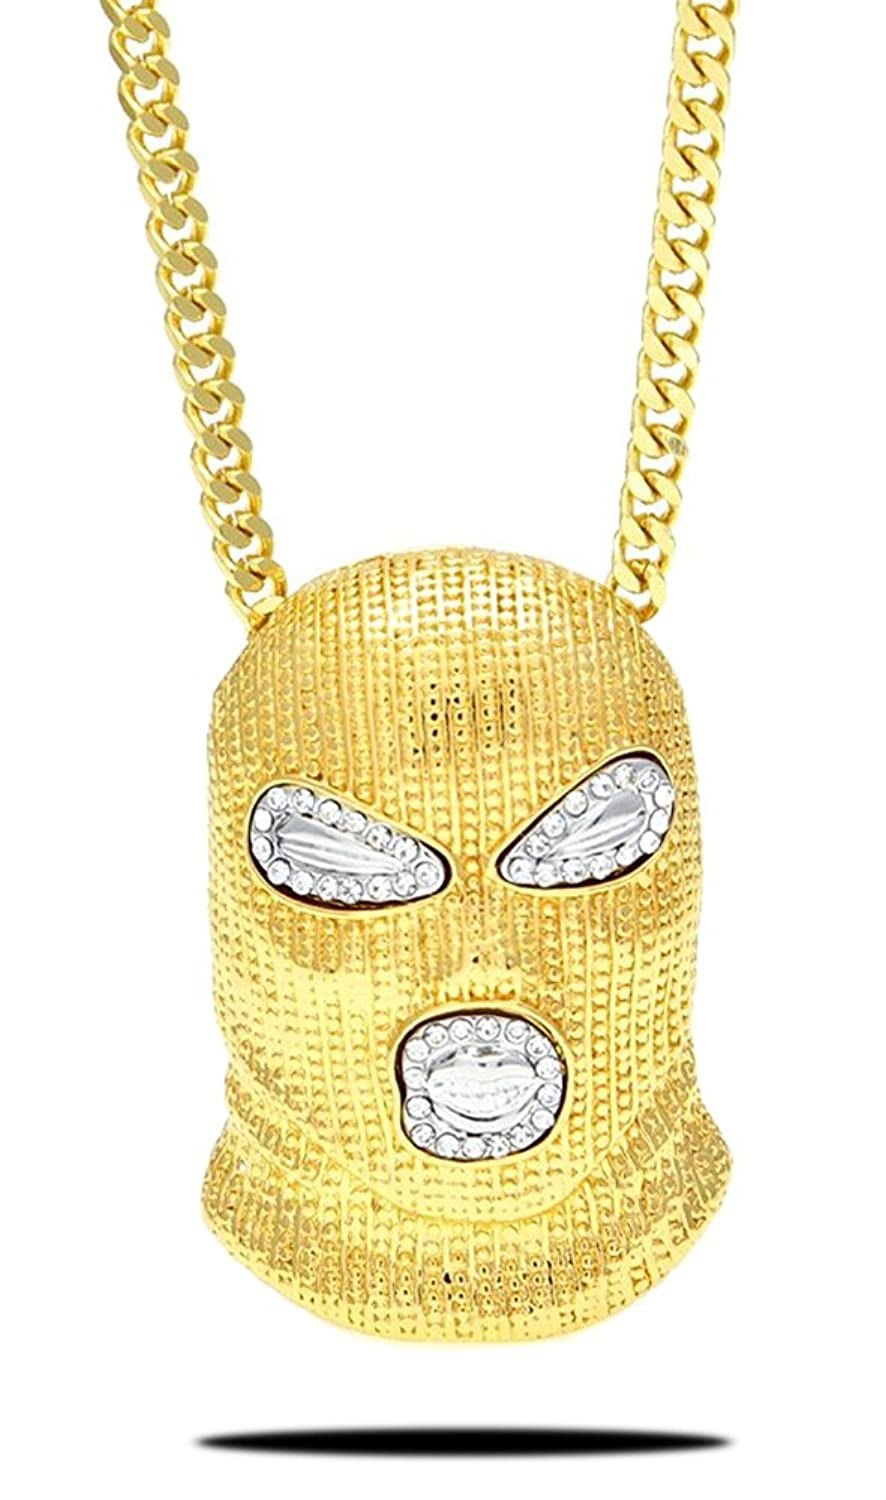 Xusamss Hip Hop Stainless Steel Crystal Mask Pendant Chain Necklace,27inches